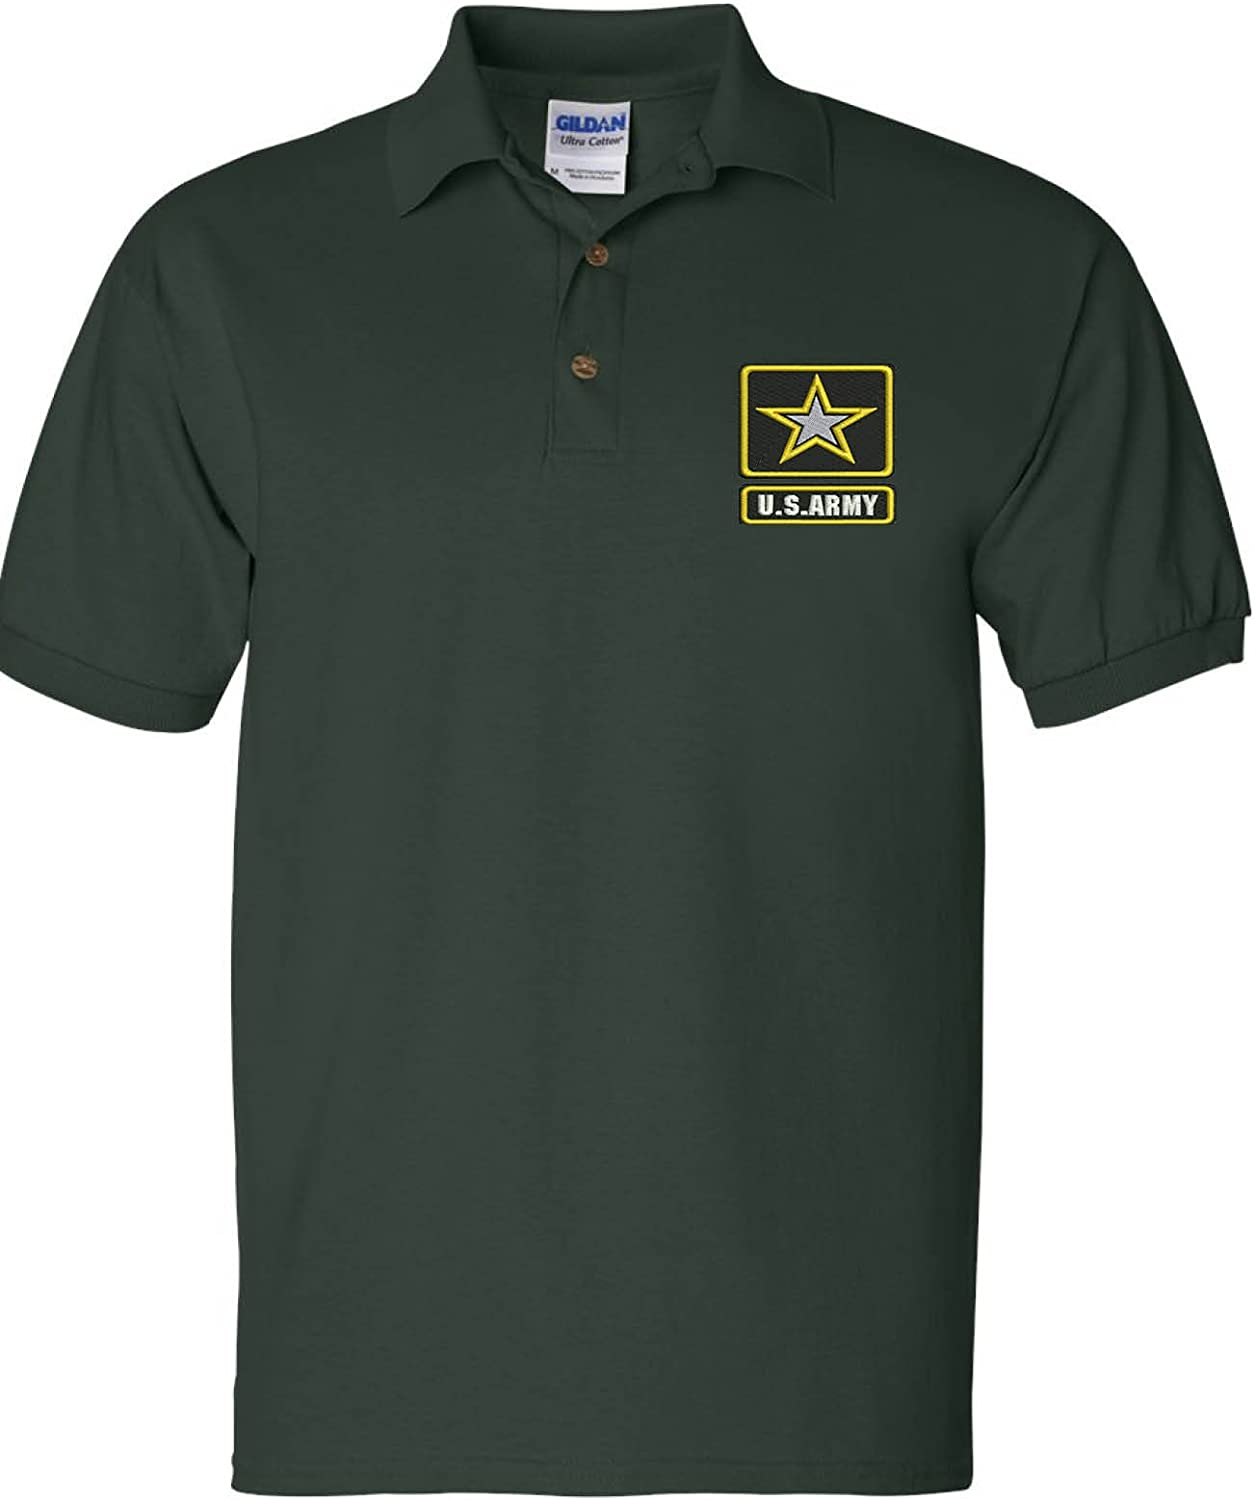 ALLNTRENDS Men's Polo T Shirt Popular brand in the world US Army A USA Los Angeles Mall Embroidered Military